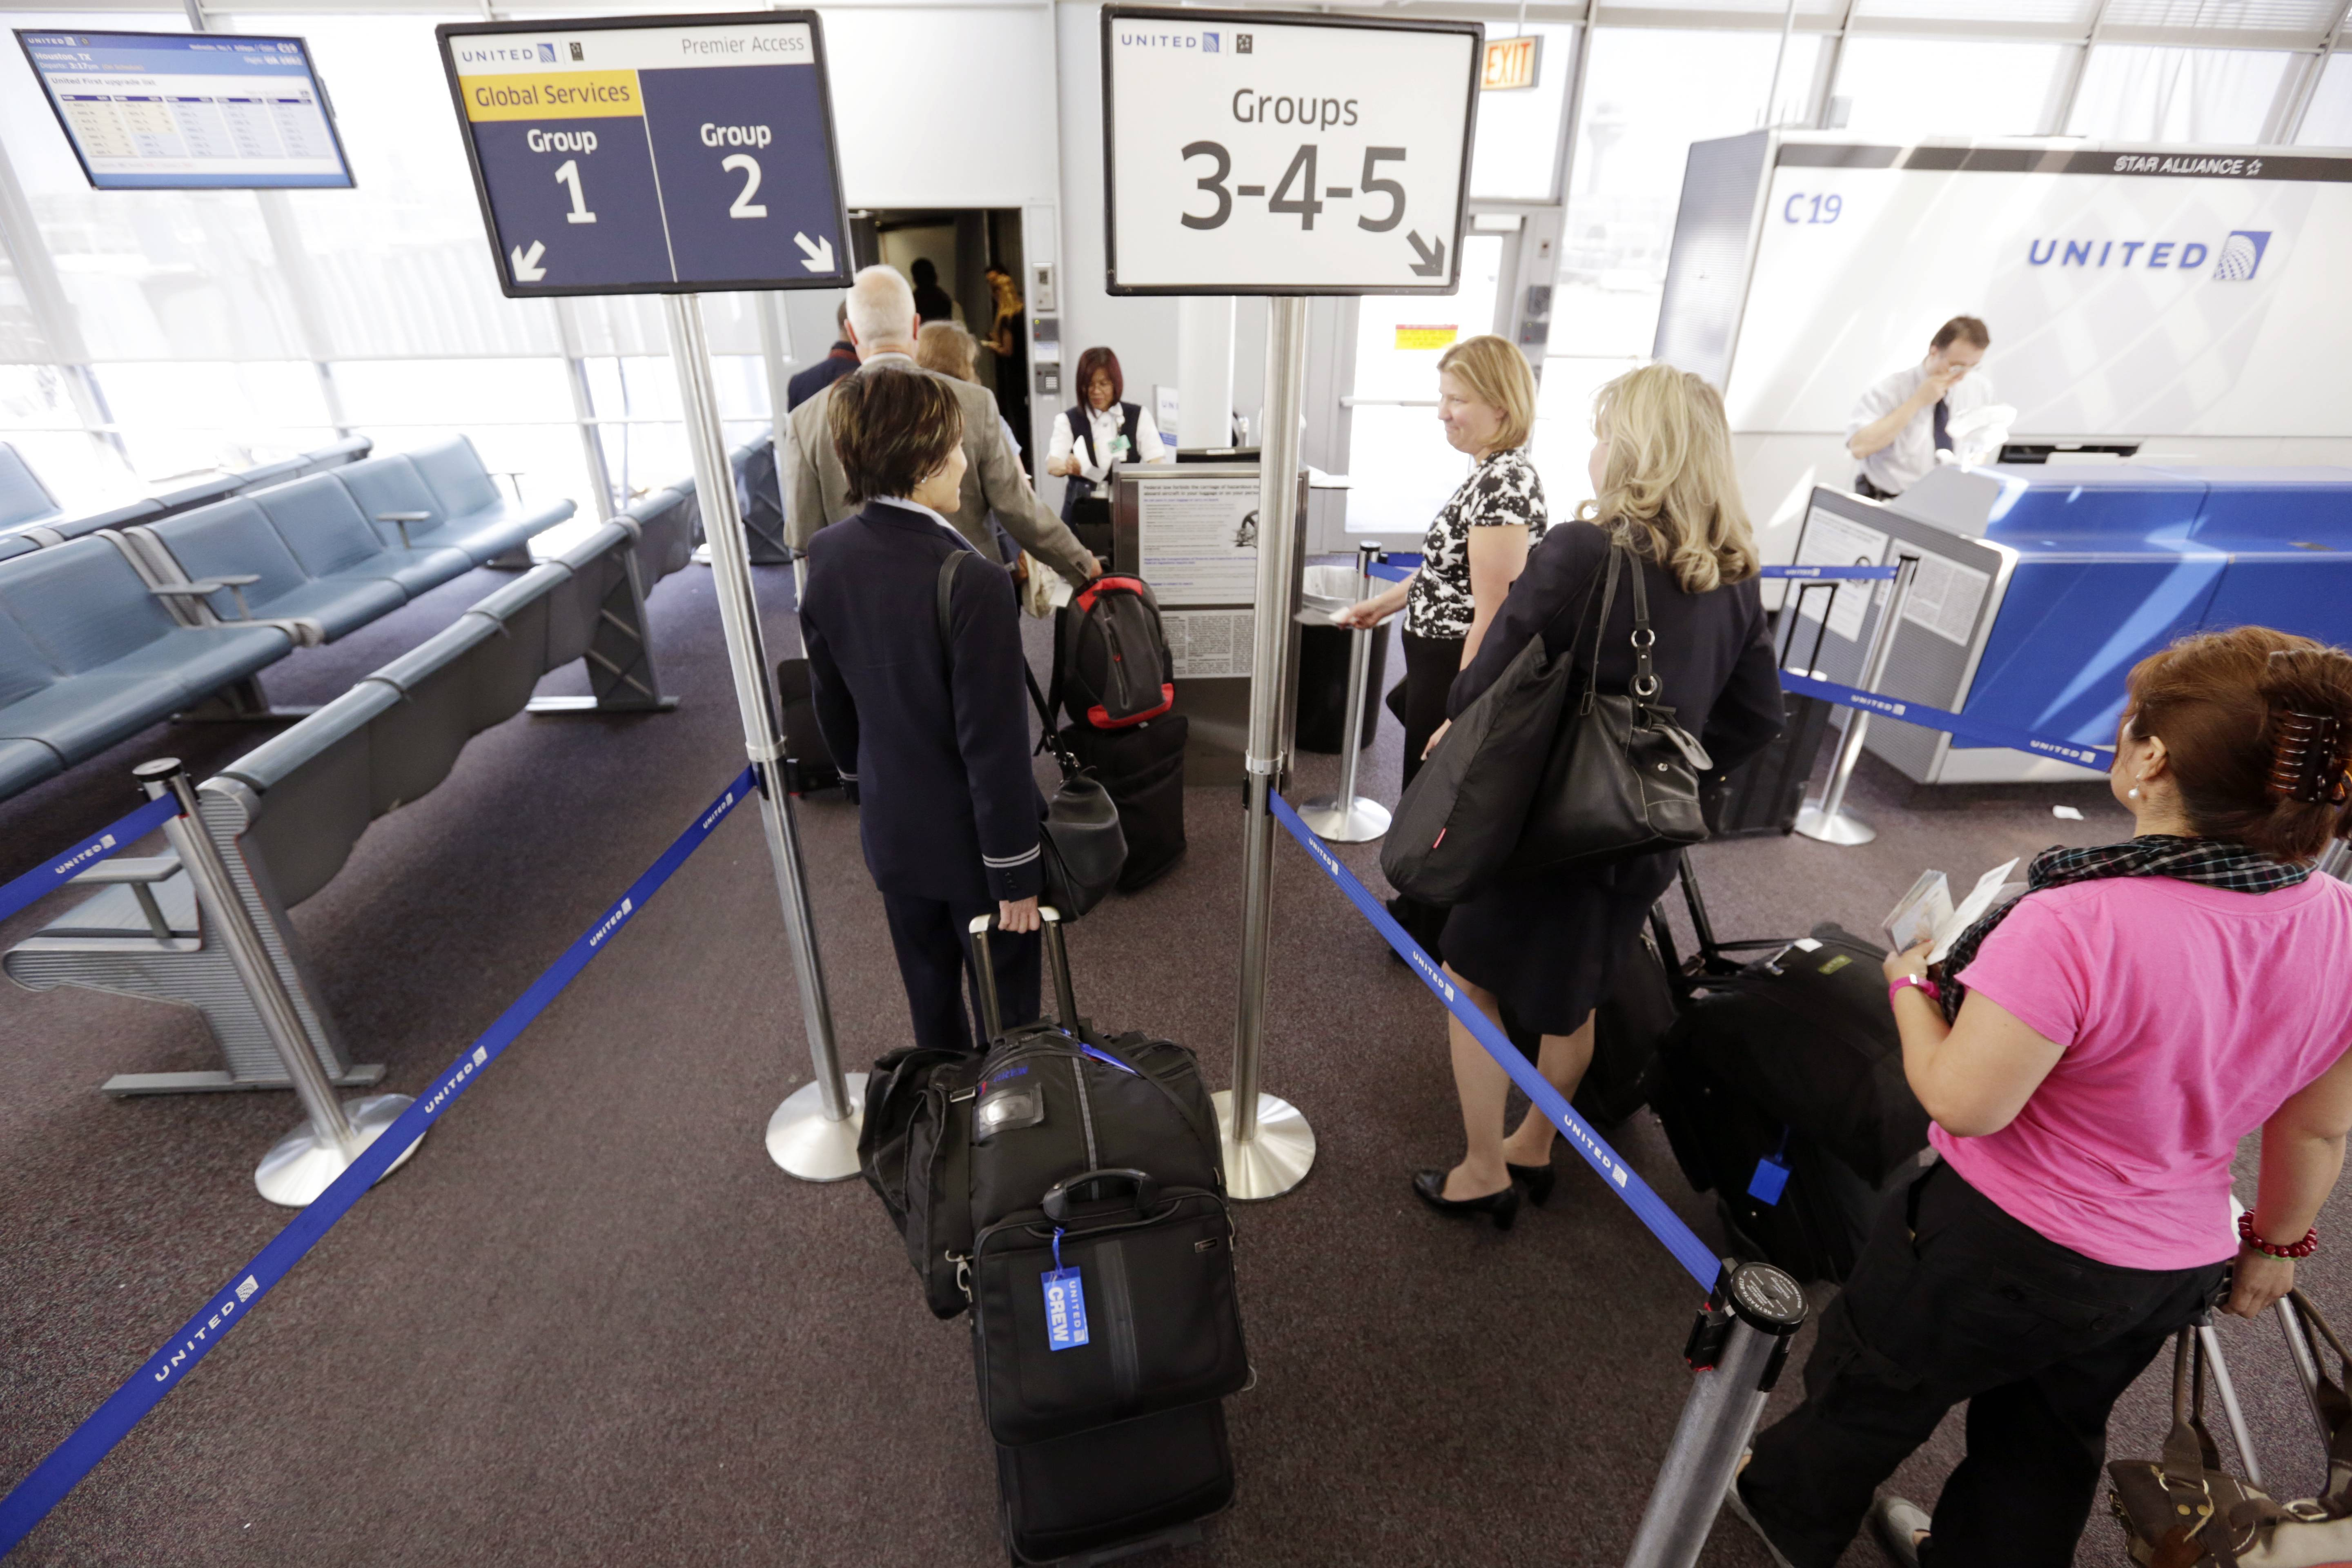 Passengers wait at a United Airlines gate to board a flight in separate numbered lanes at O'Hare International Airport in Chicago. In February, United Airlines installed new bag sizers at airports and emailed its frequent fliers, reminding them of their carry-on size rules.